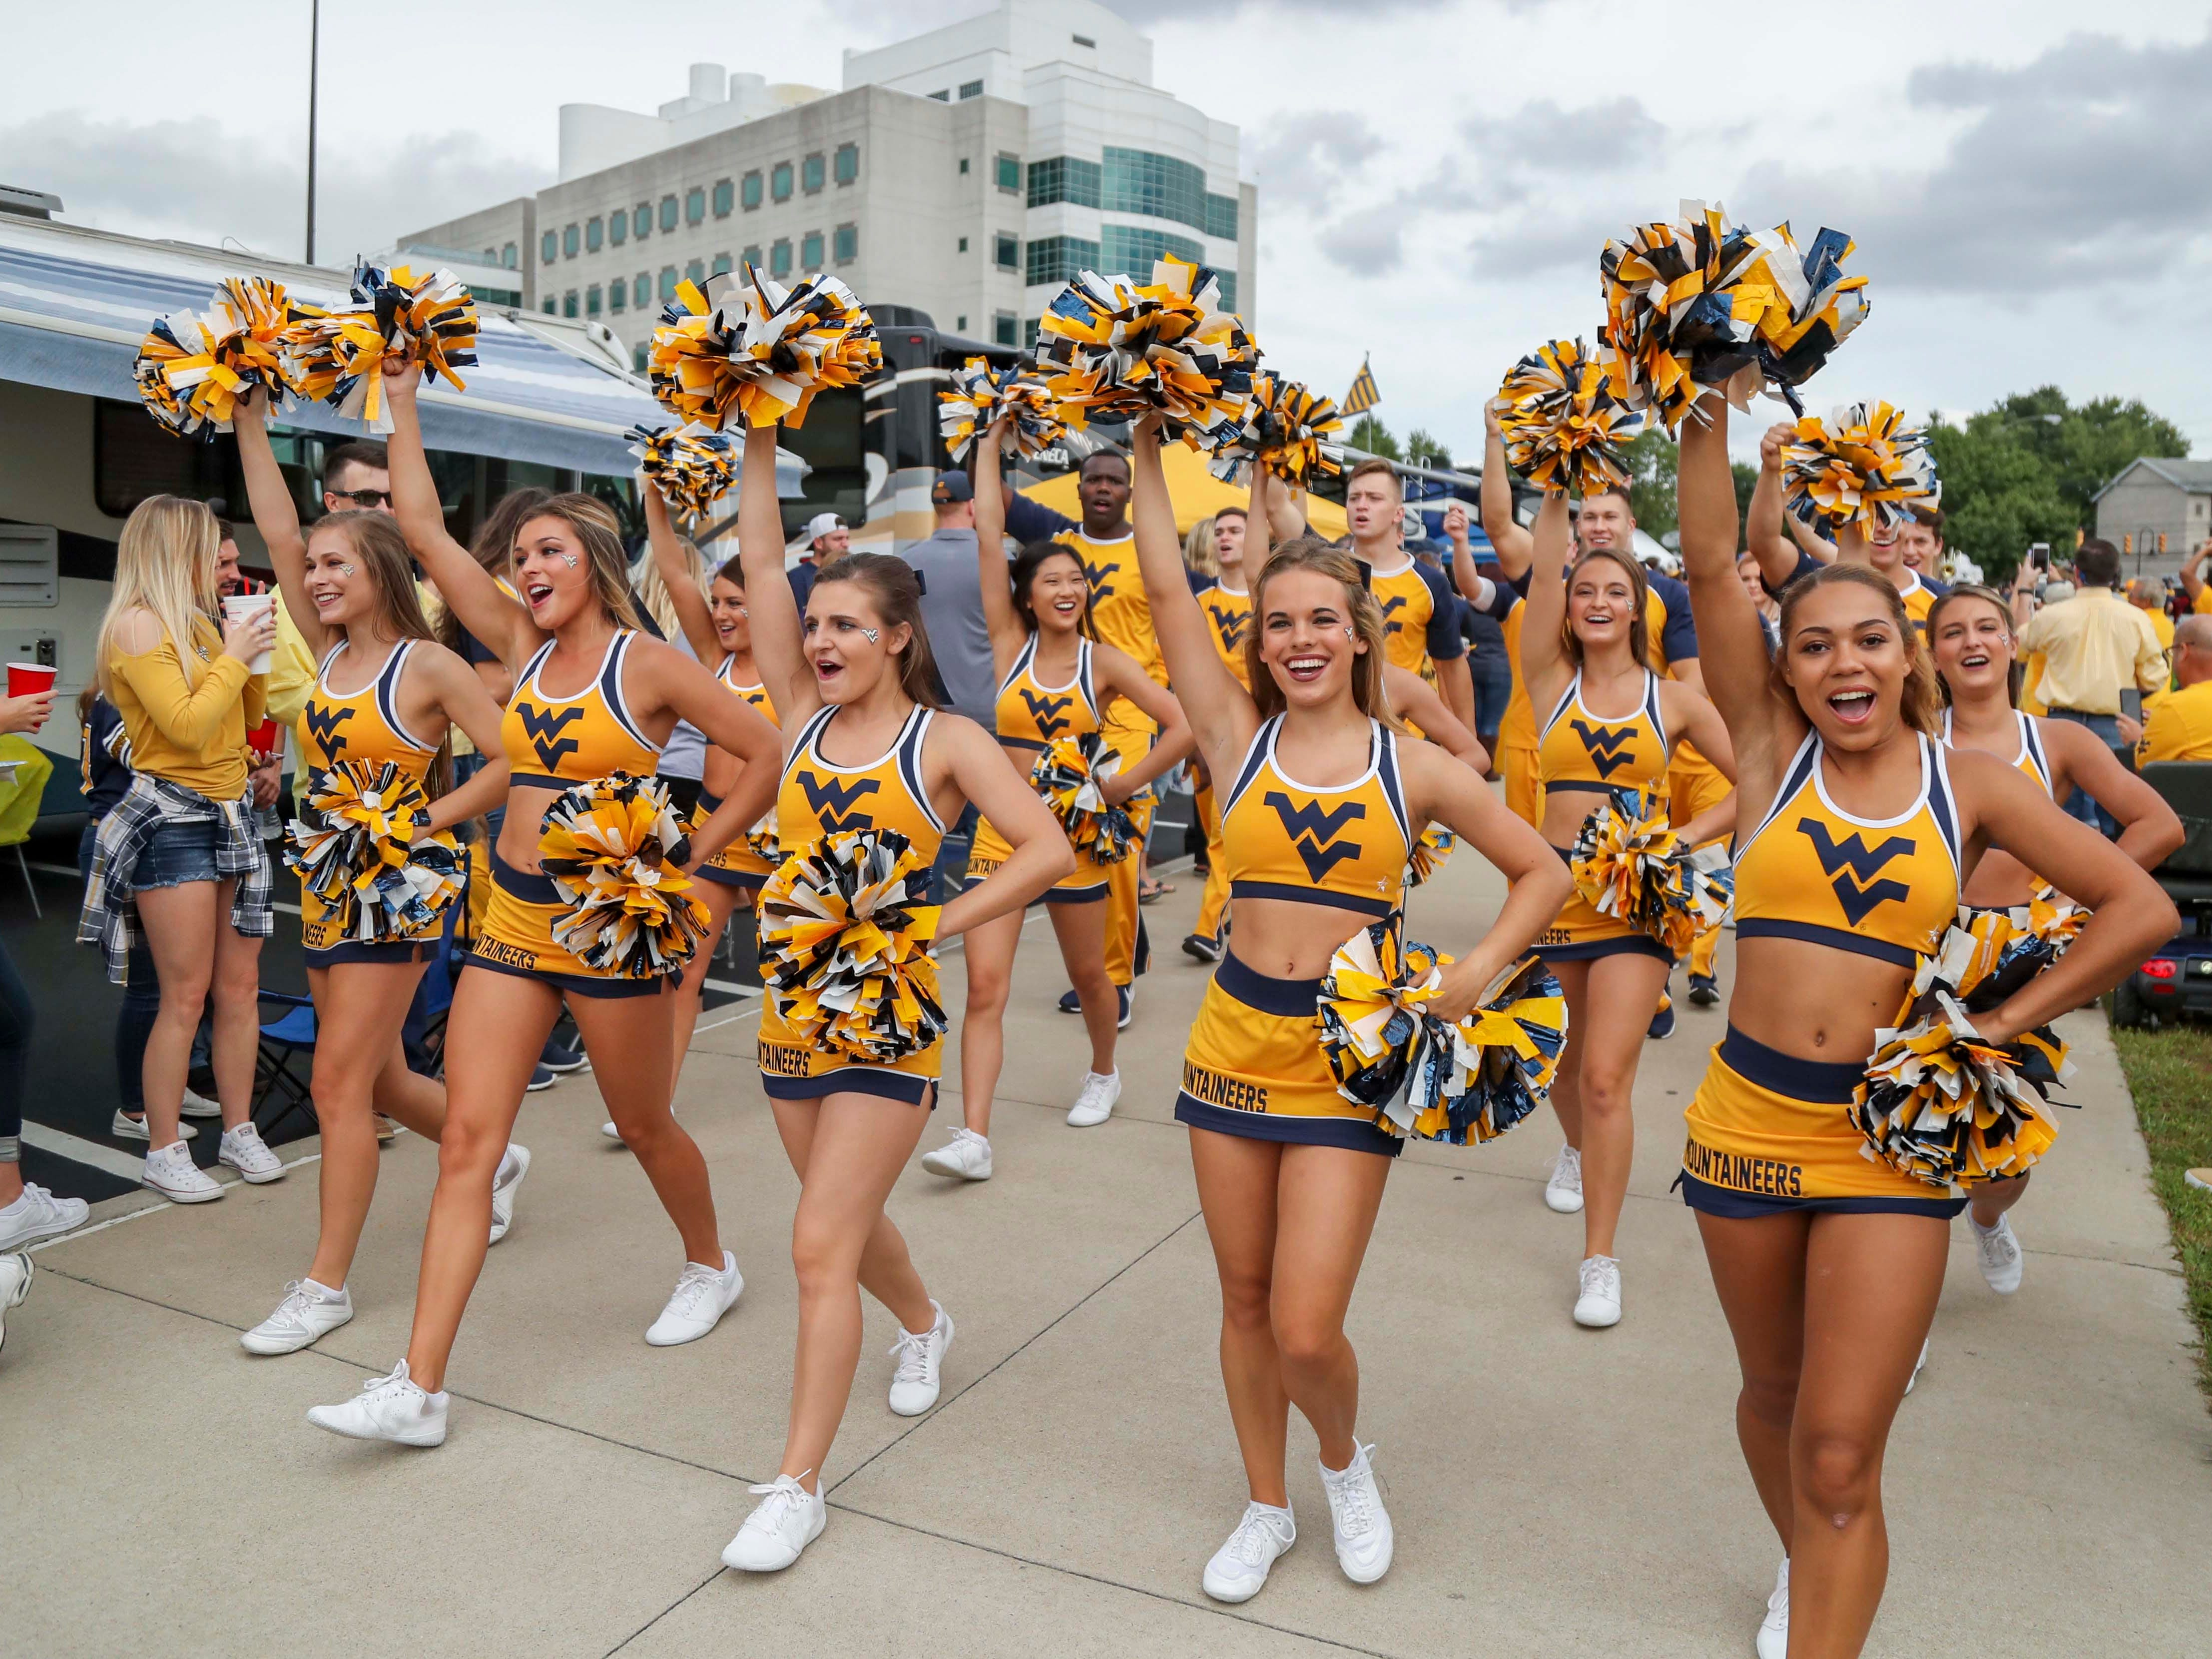 West Virginia Mountaineers cheerleaders lead the team into the stadium before their game against the Kansas State Wildcats at Mountaineer Field at Milan Puskar Stadium.